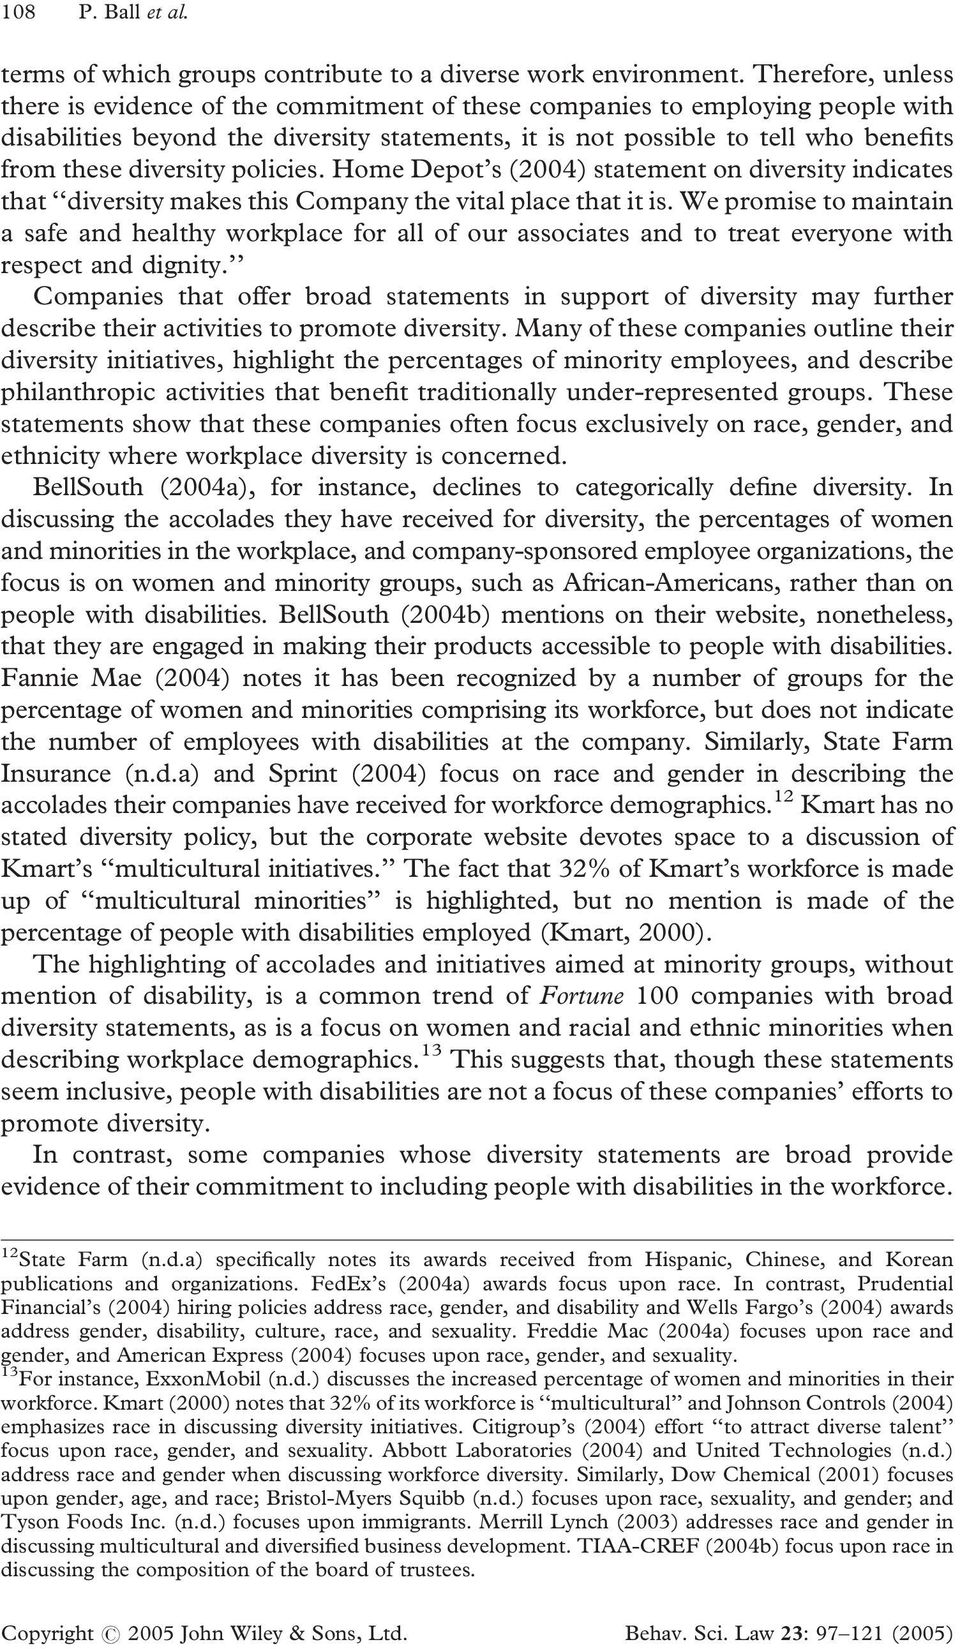 diversity policies. Home Depot s (2004) statement on diversity indicates that diversity makes this Company the vital place that it is.